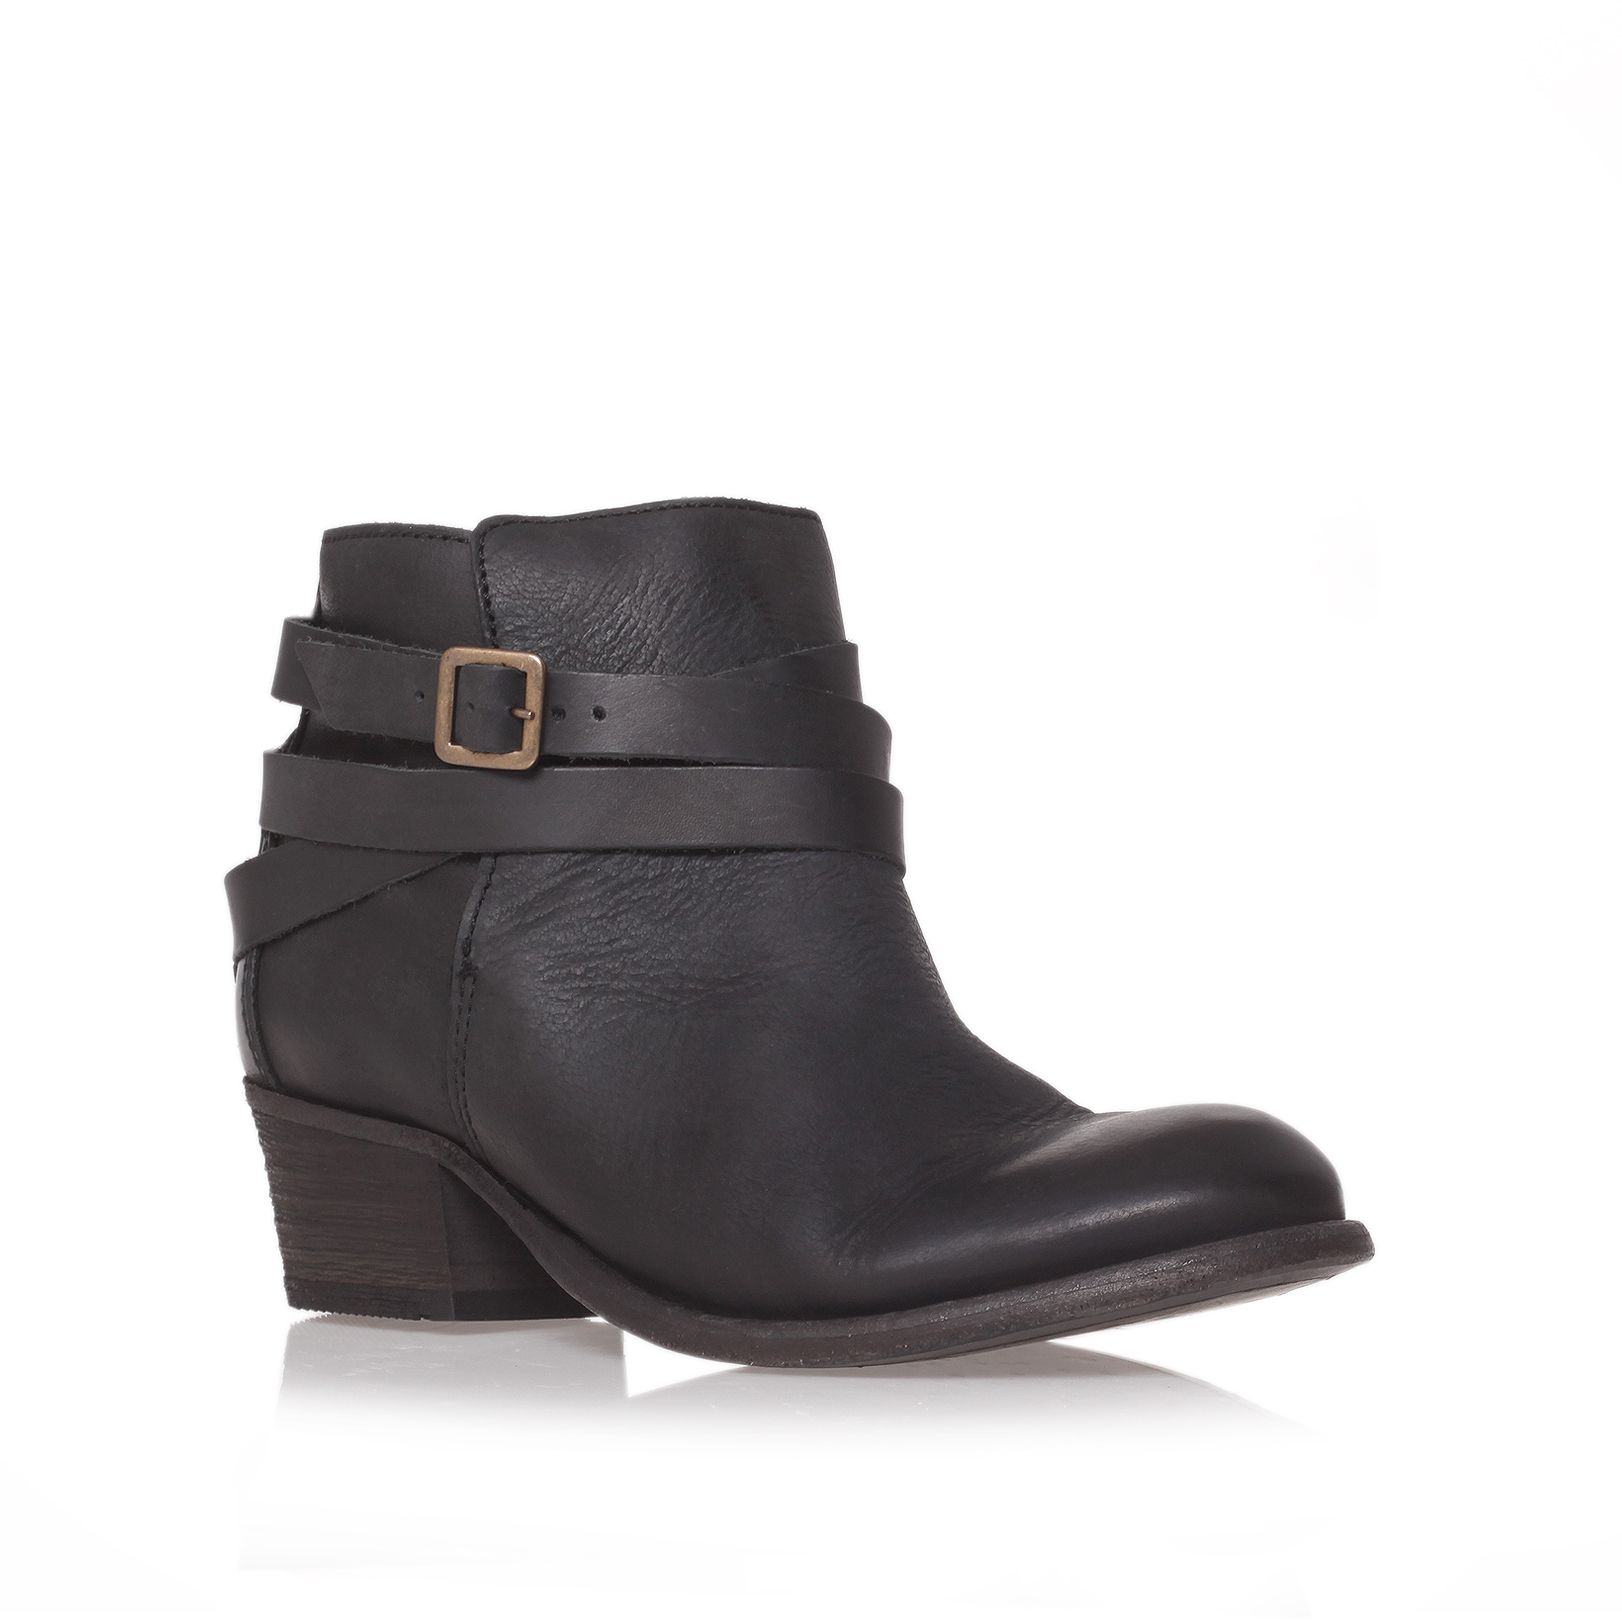 Zipper ankle boots have a suede and a low, stacked heel adds some Premier Standard Women's Elastic Side Panel Ankle Bootie - Comfortable Closed Toe Shoe – Low Heel Walking Boot .